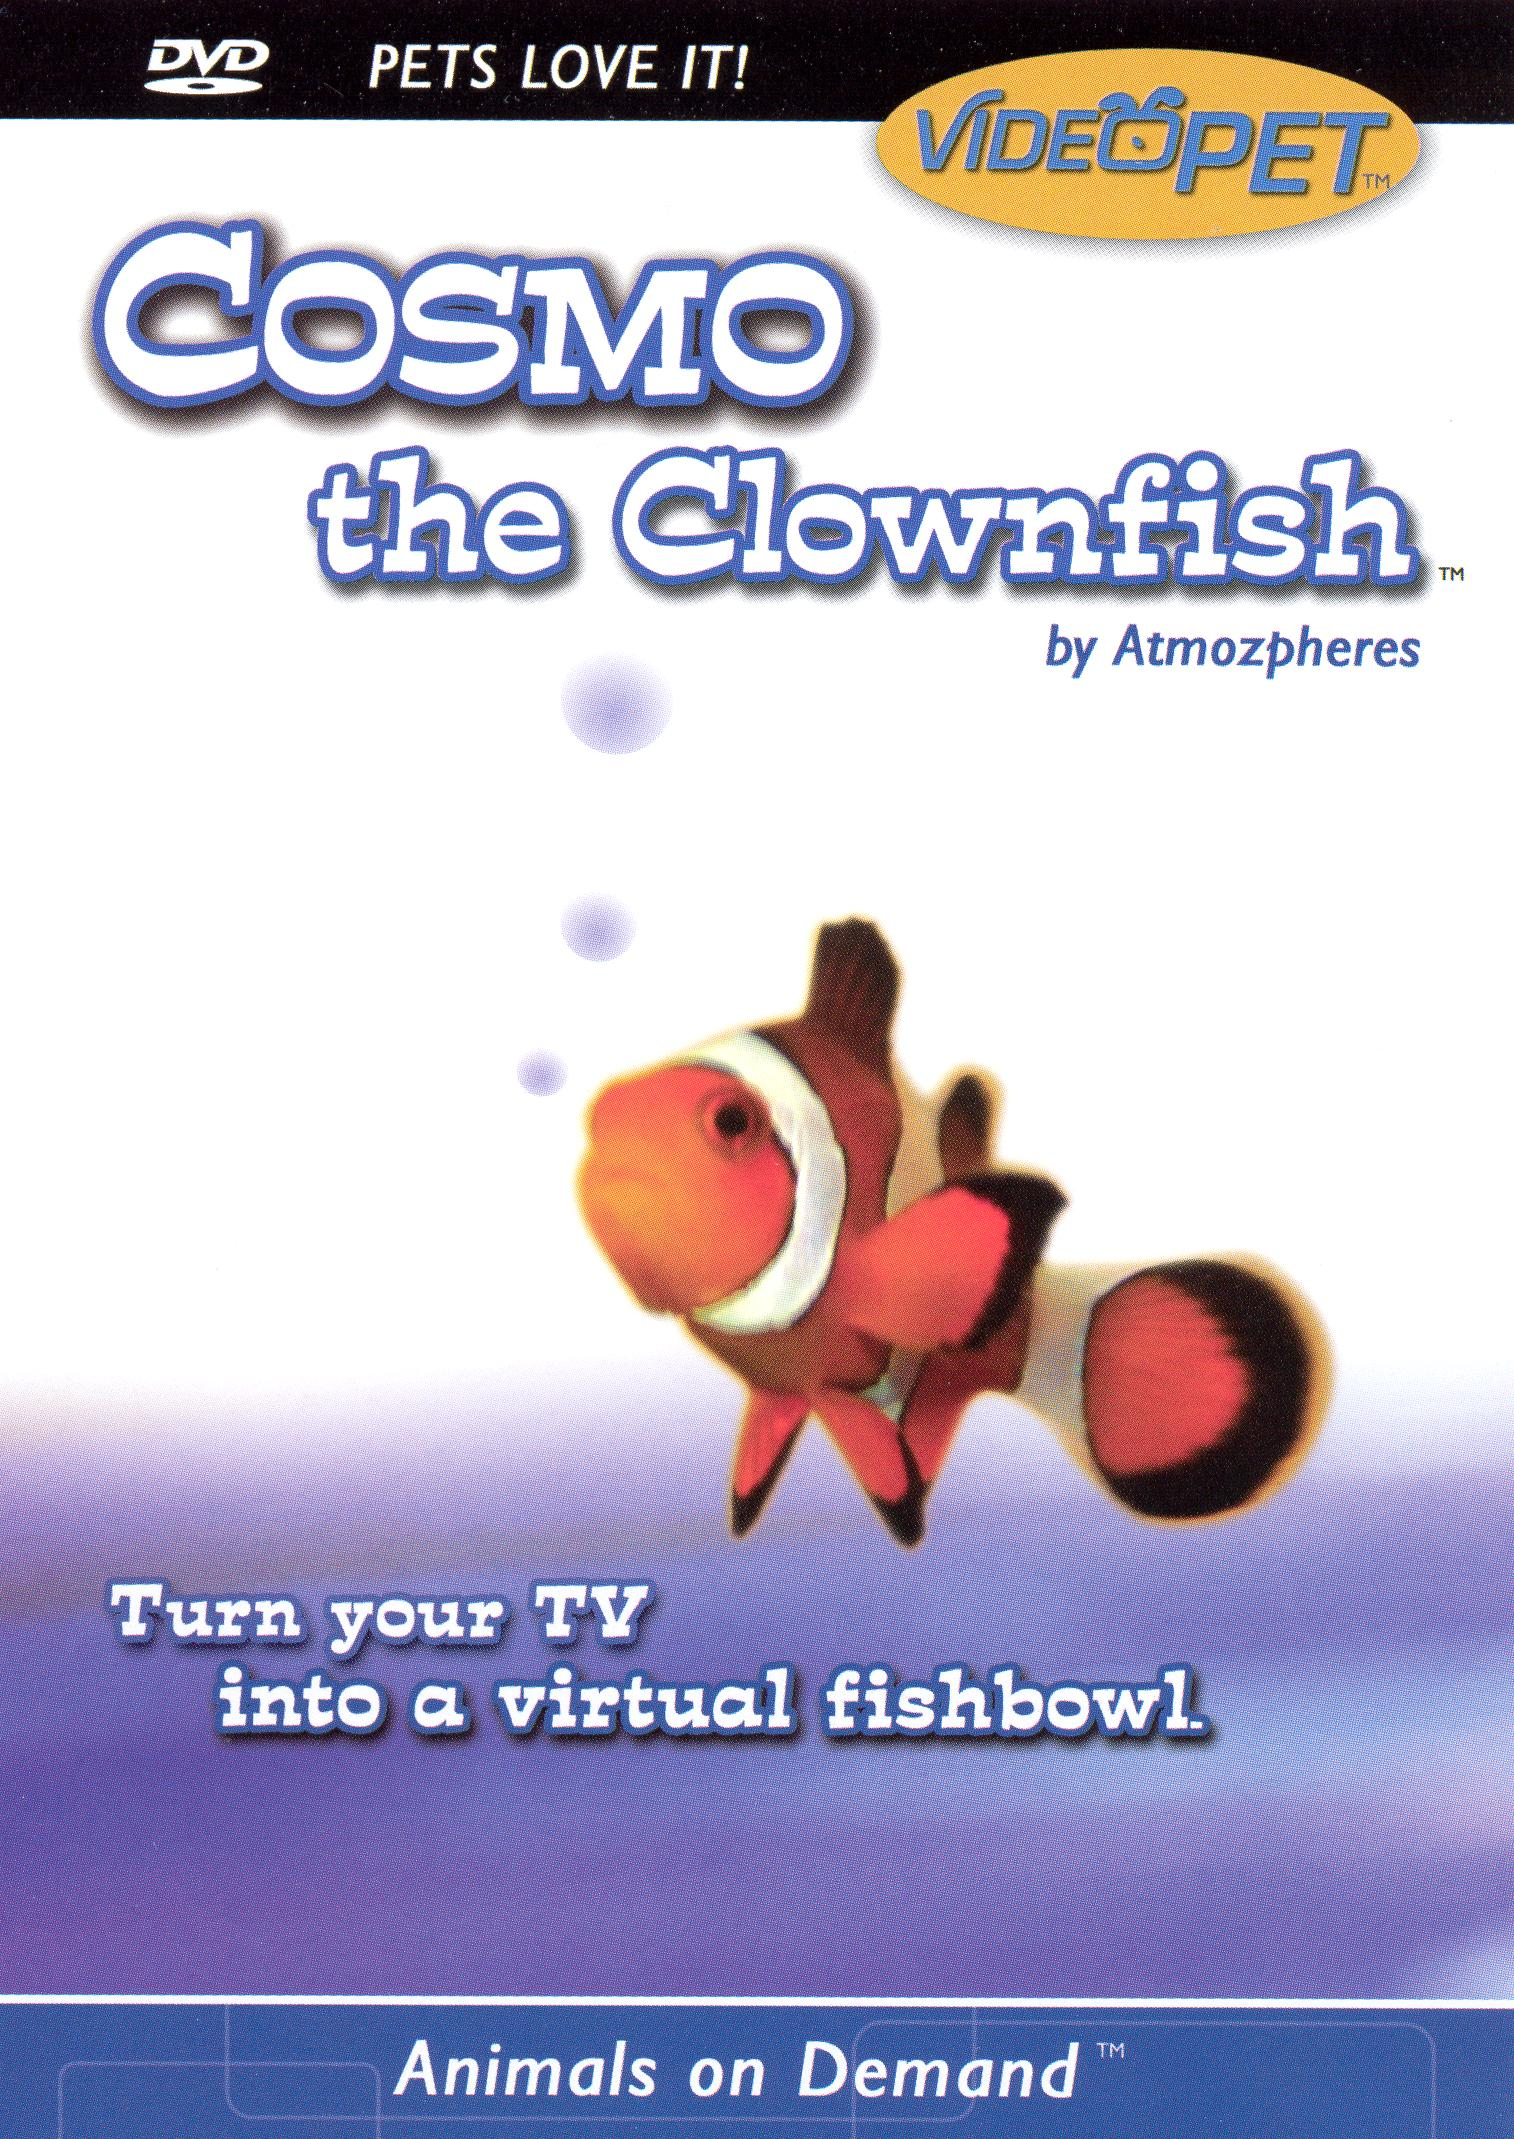 Animals On Demand: Cosmo the Clownfish By Atmozpheres